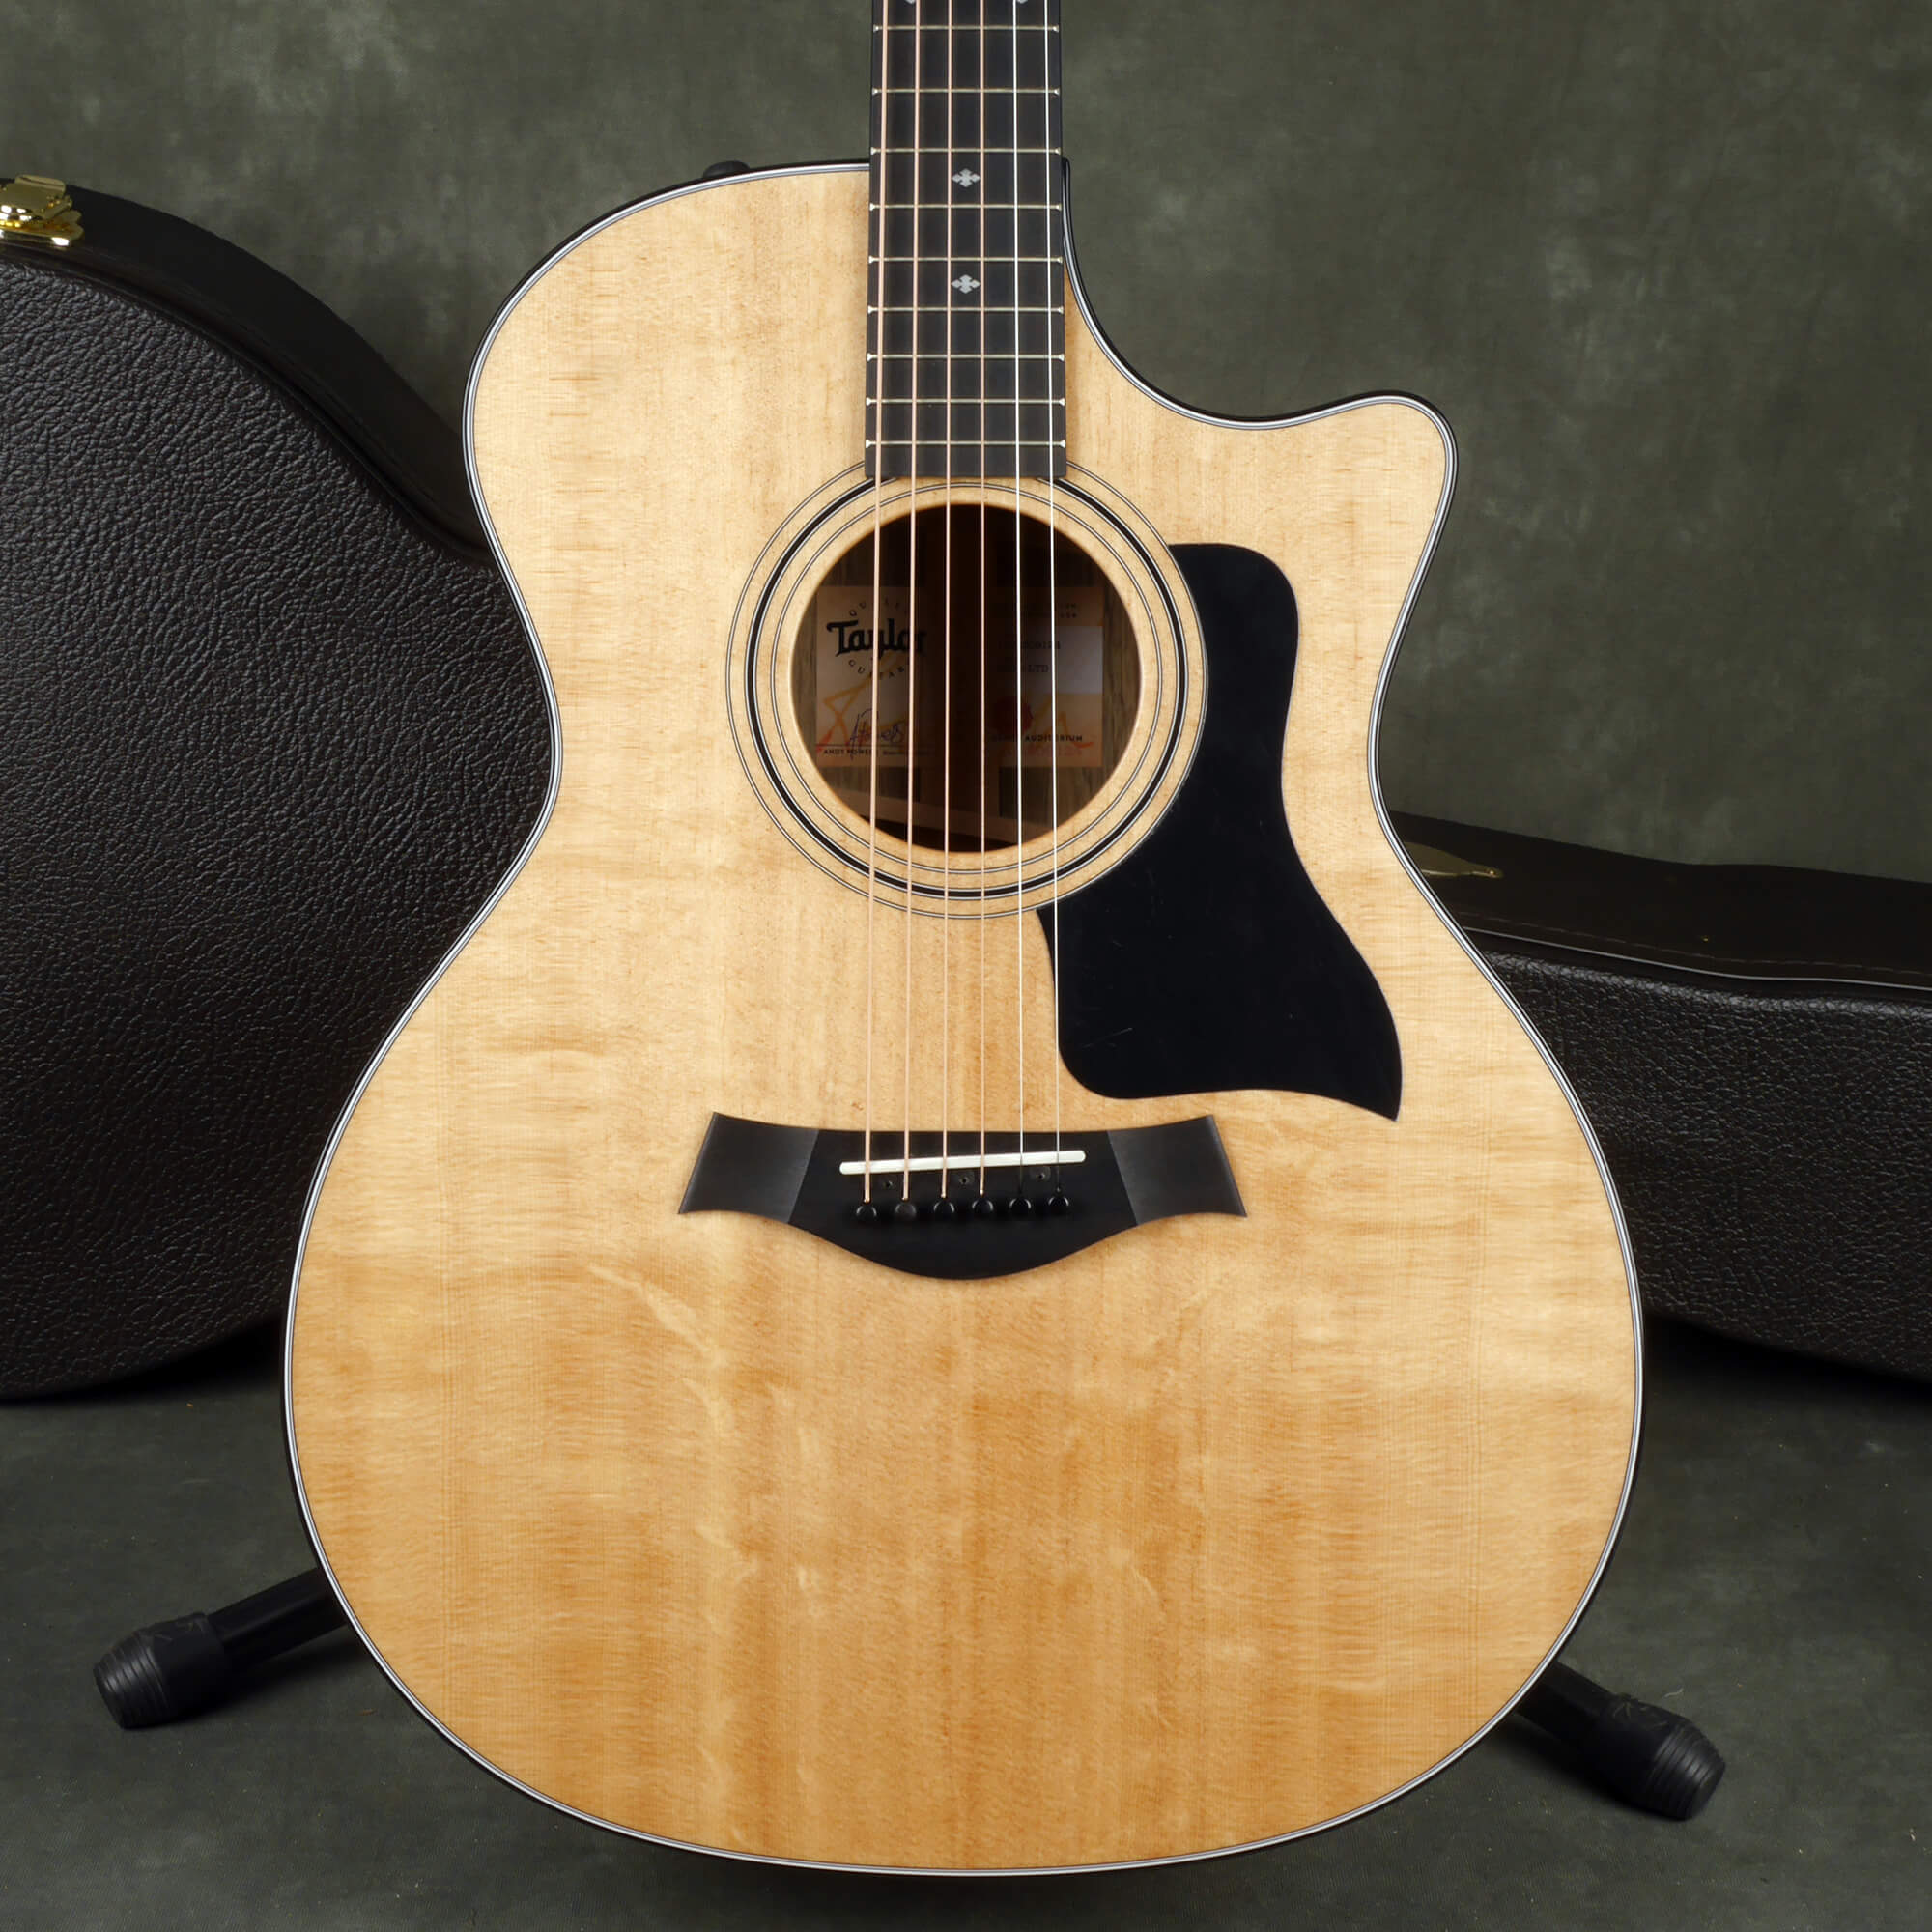 Taylor 414ce-LTD Electro-Acoustic Guitar - Natural w/Hard Case - 2nd Hand